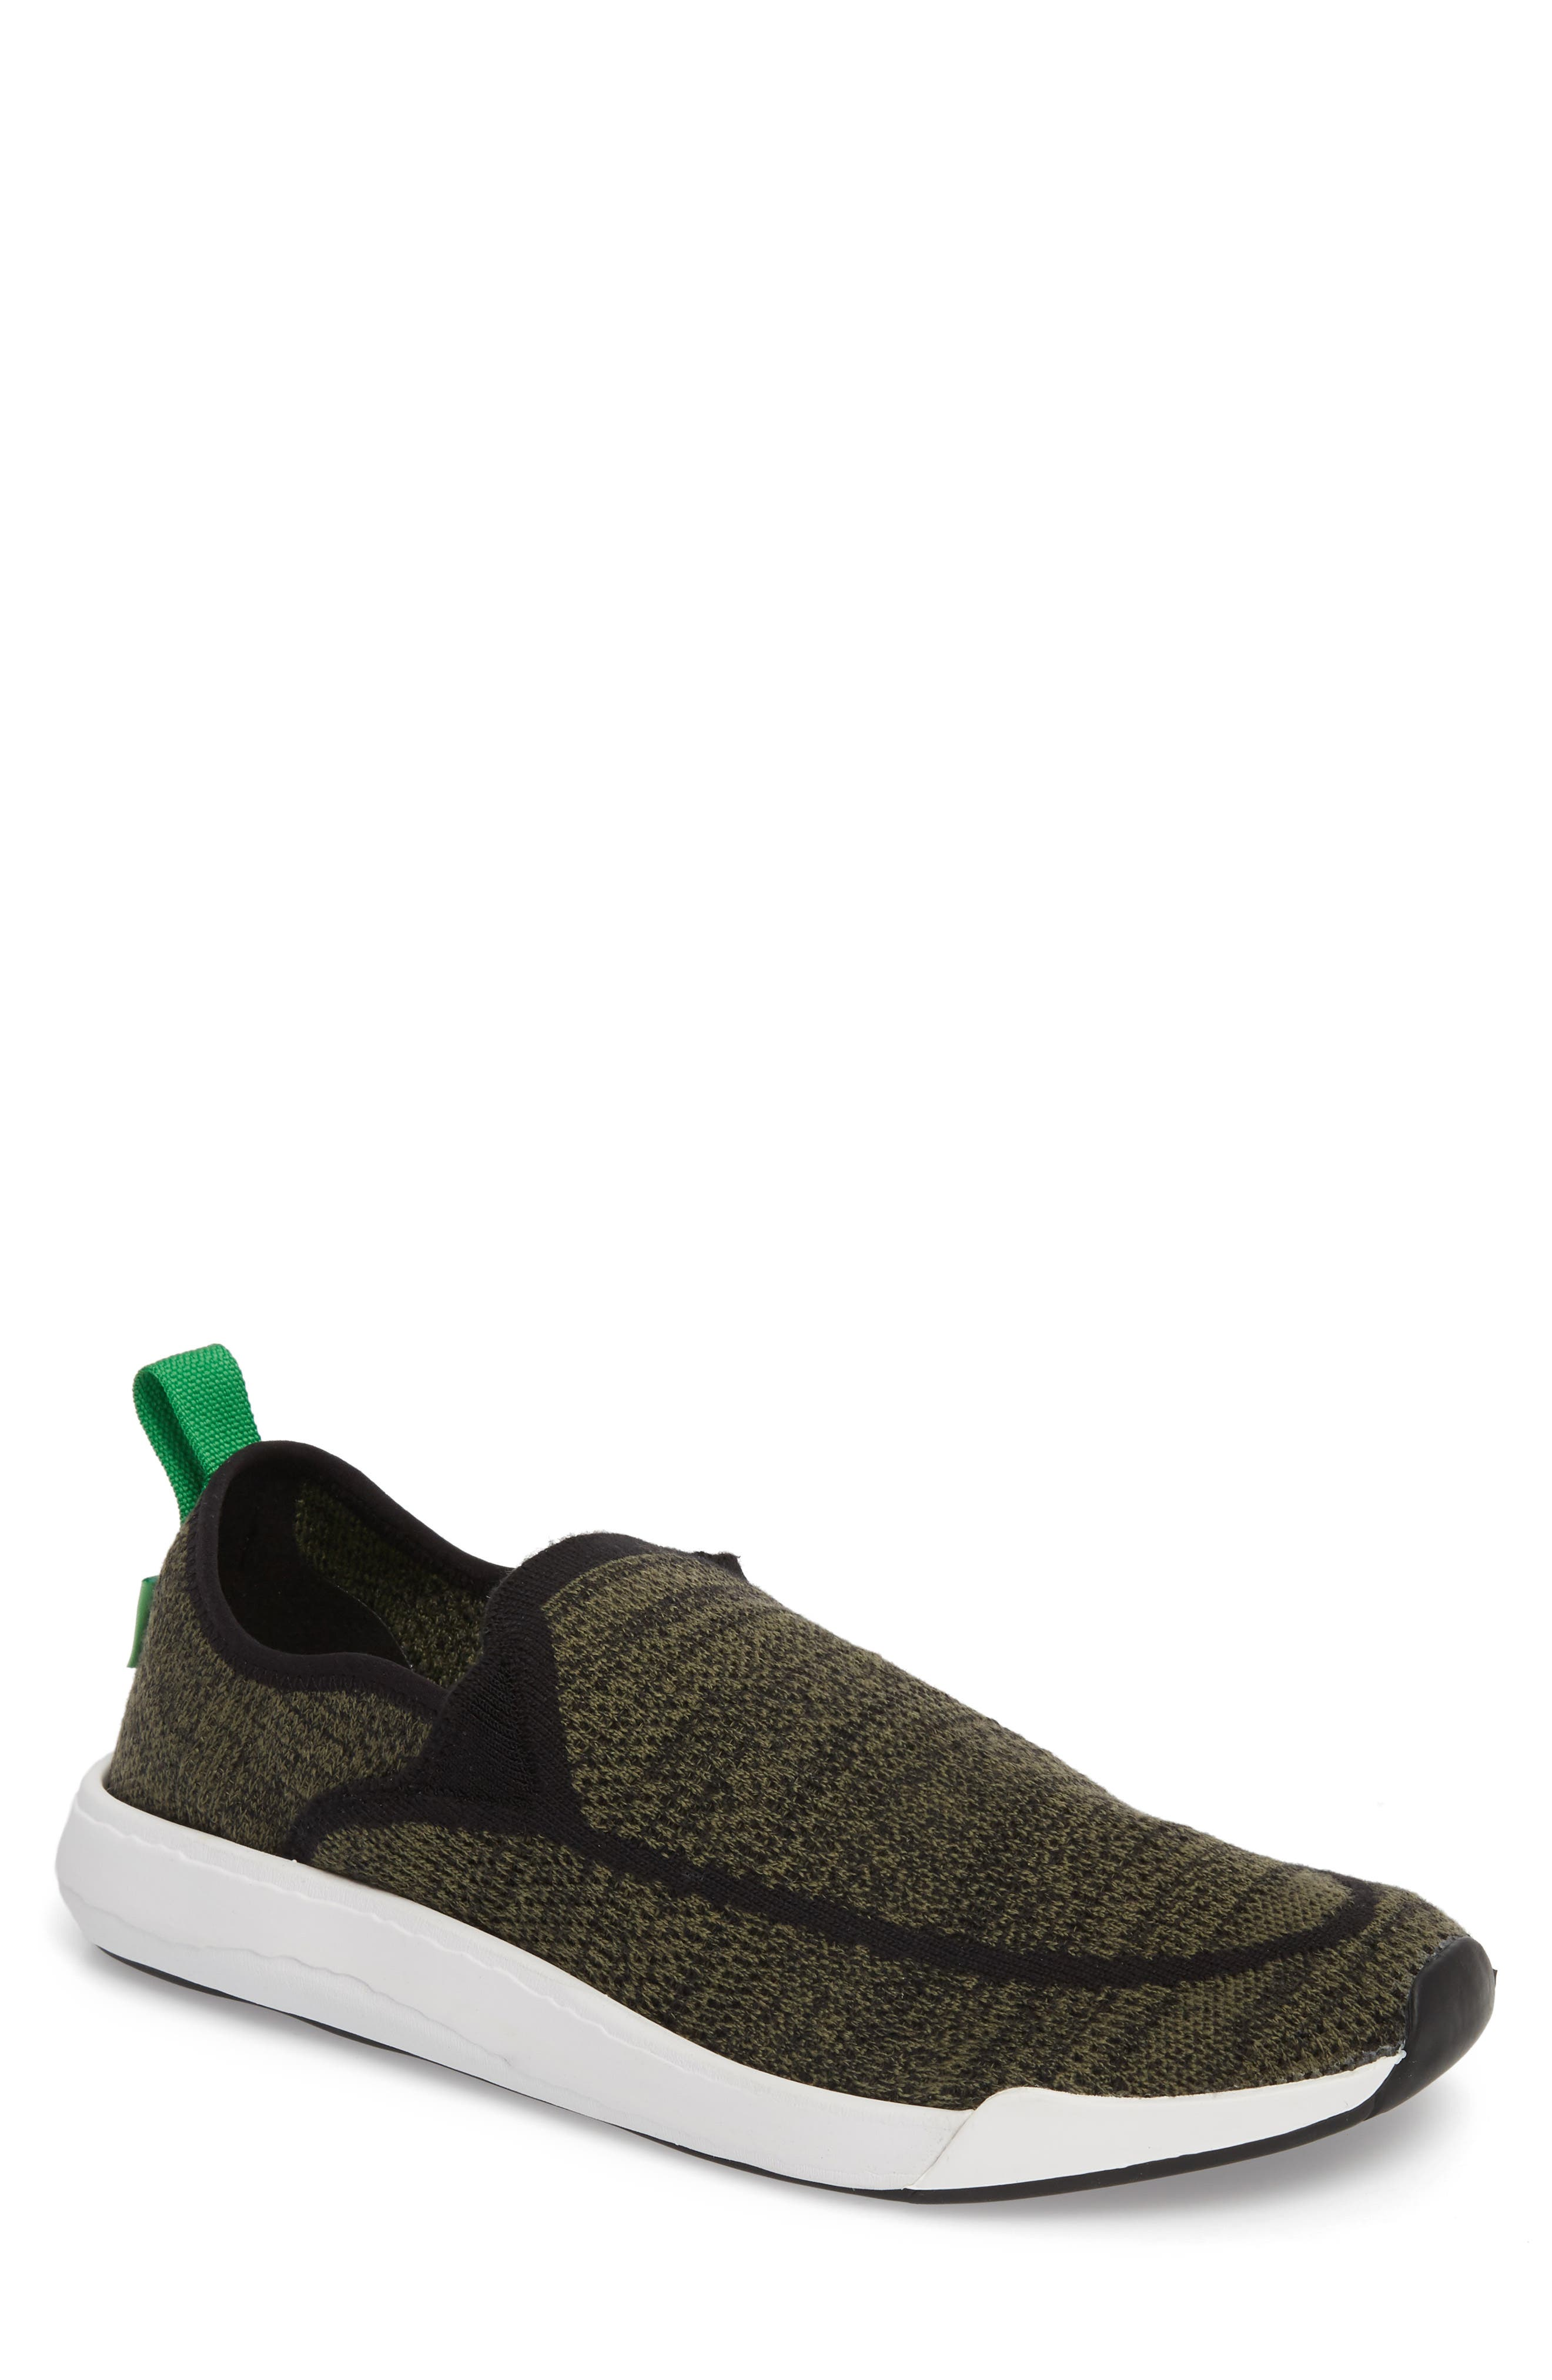 Chiba Quest Knit Slip-On Sneaker,                         Main,                         color, OLIVE